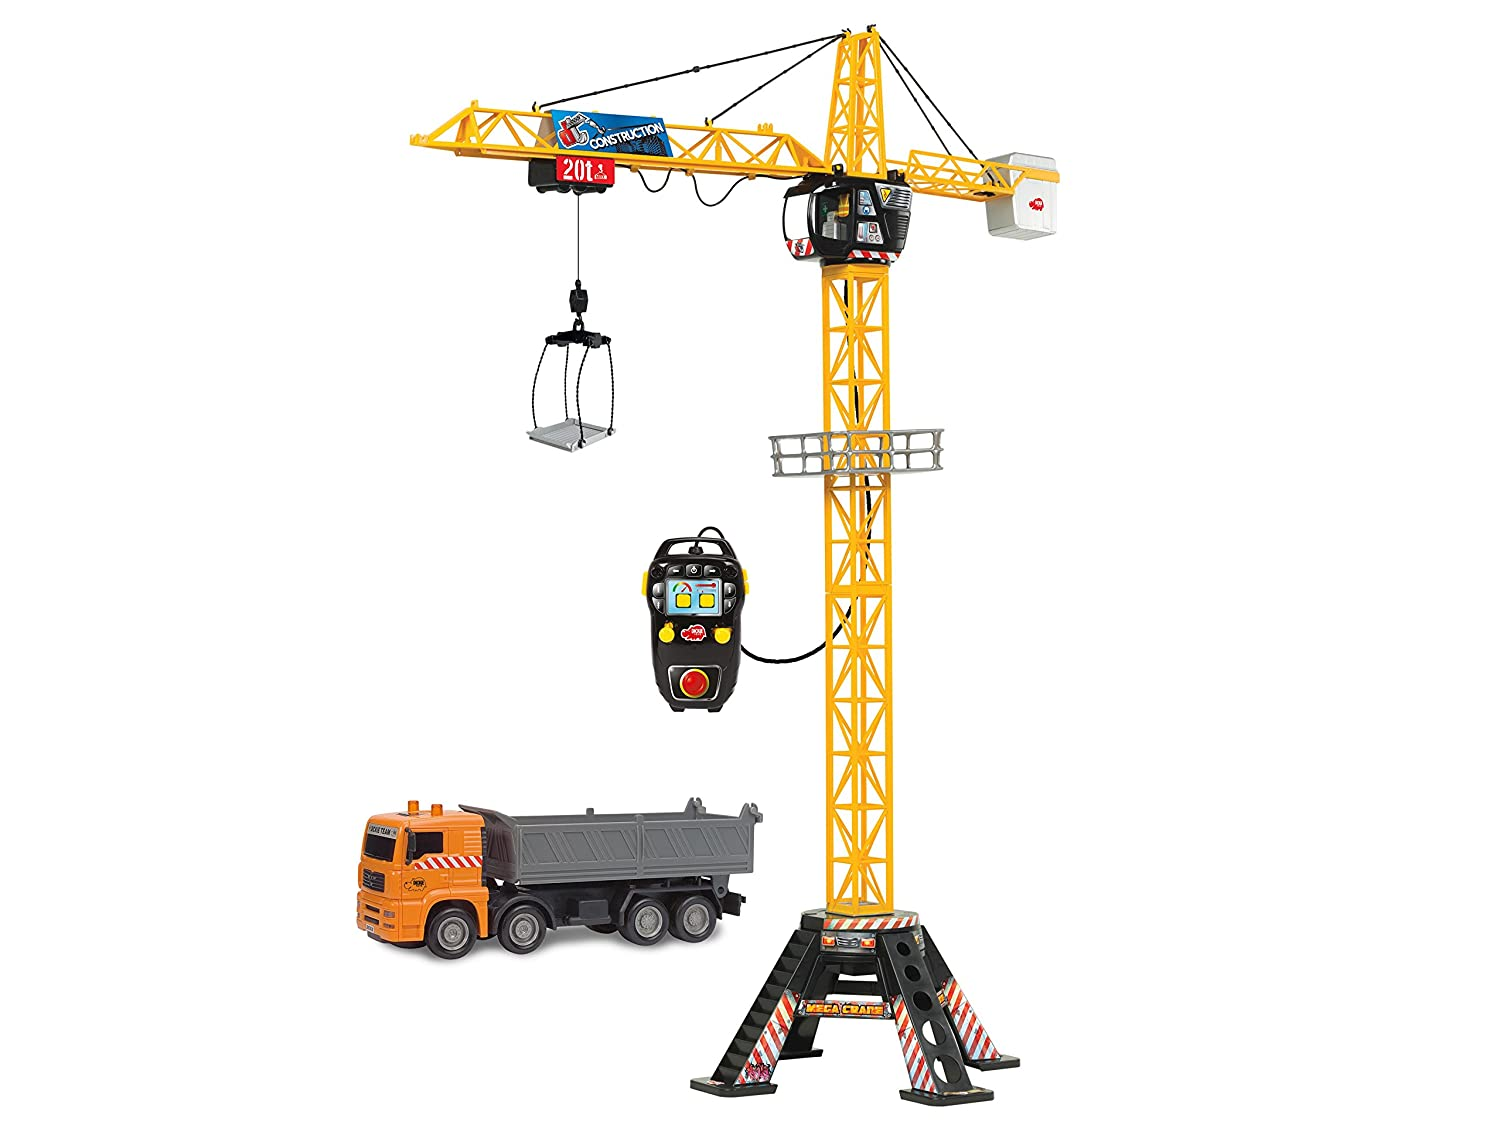 Top 9 Best Remote Control Cranes Toys Reviews in 2020 5